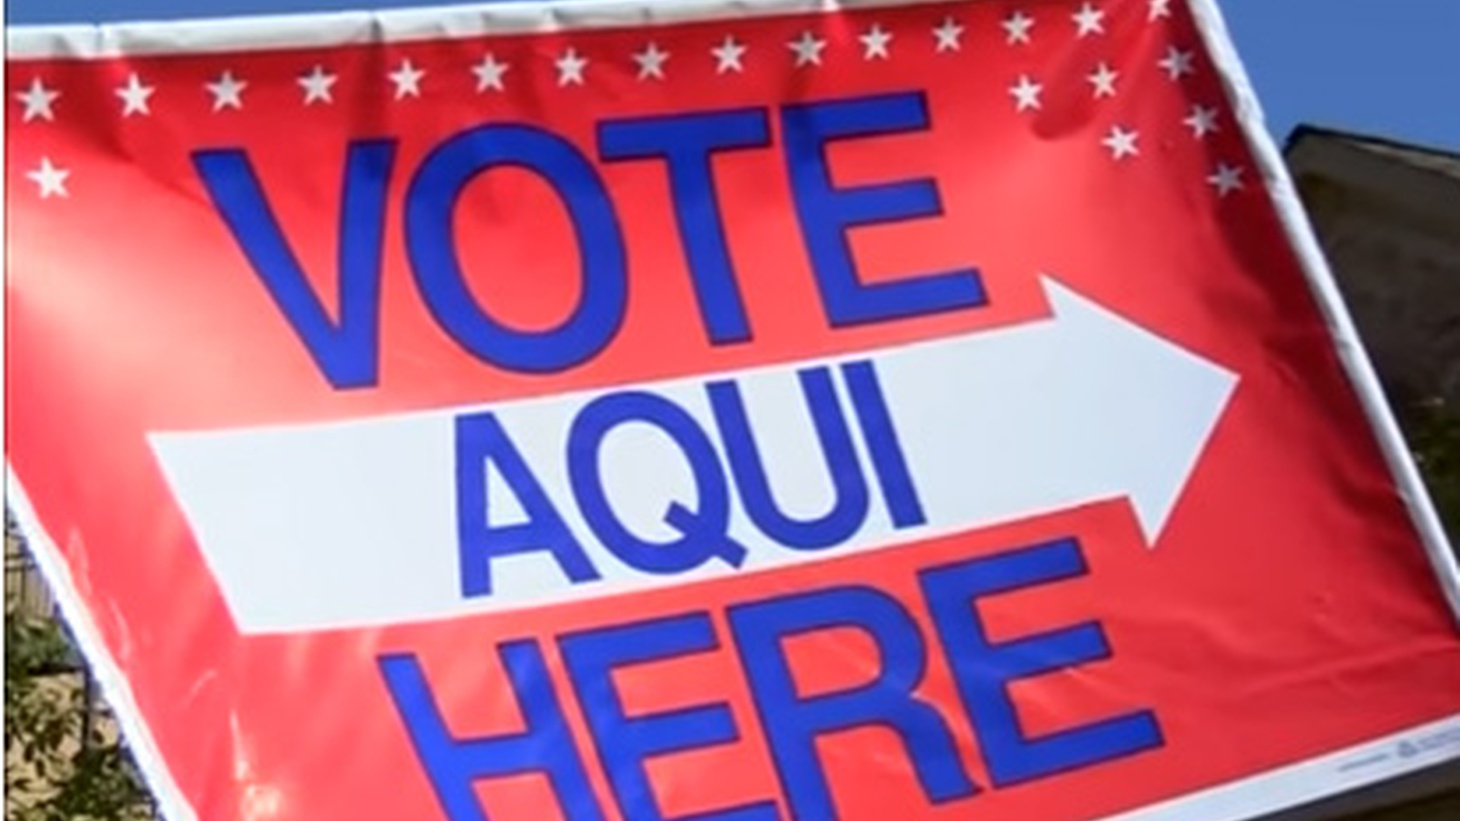 Last Friday, a federal court issued a bombshell decision in Texas: three Congressional districts were intentionally drawn to discriminate against black and Latinos and to gain voting advantages for Republicans.